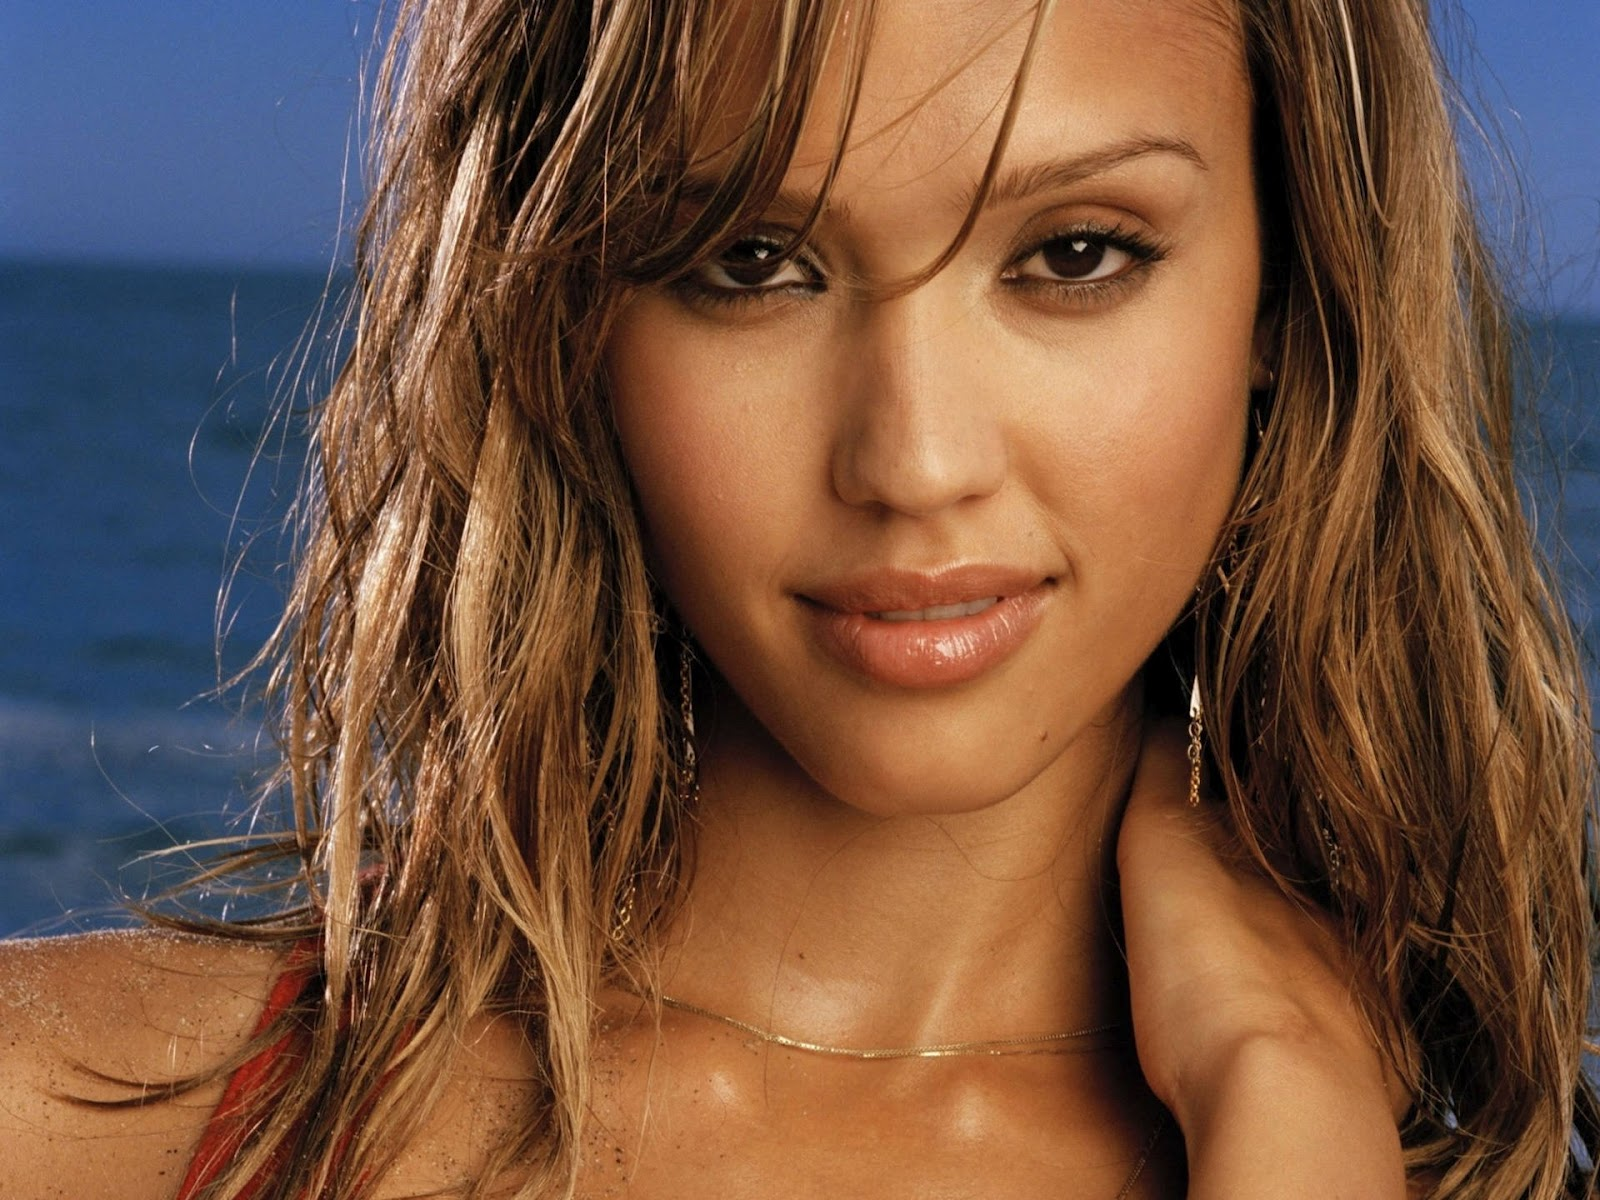 celebrity wallpaper jessica alba a lady with attraction